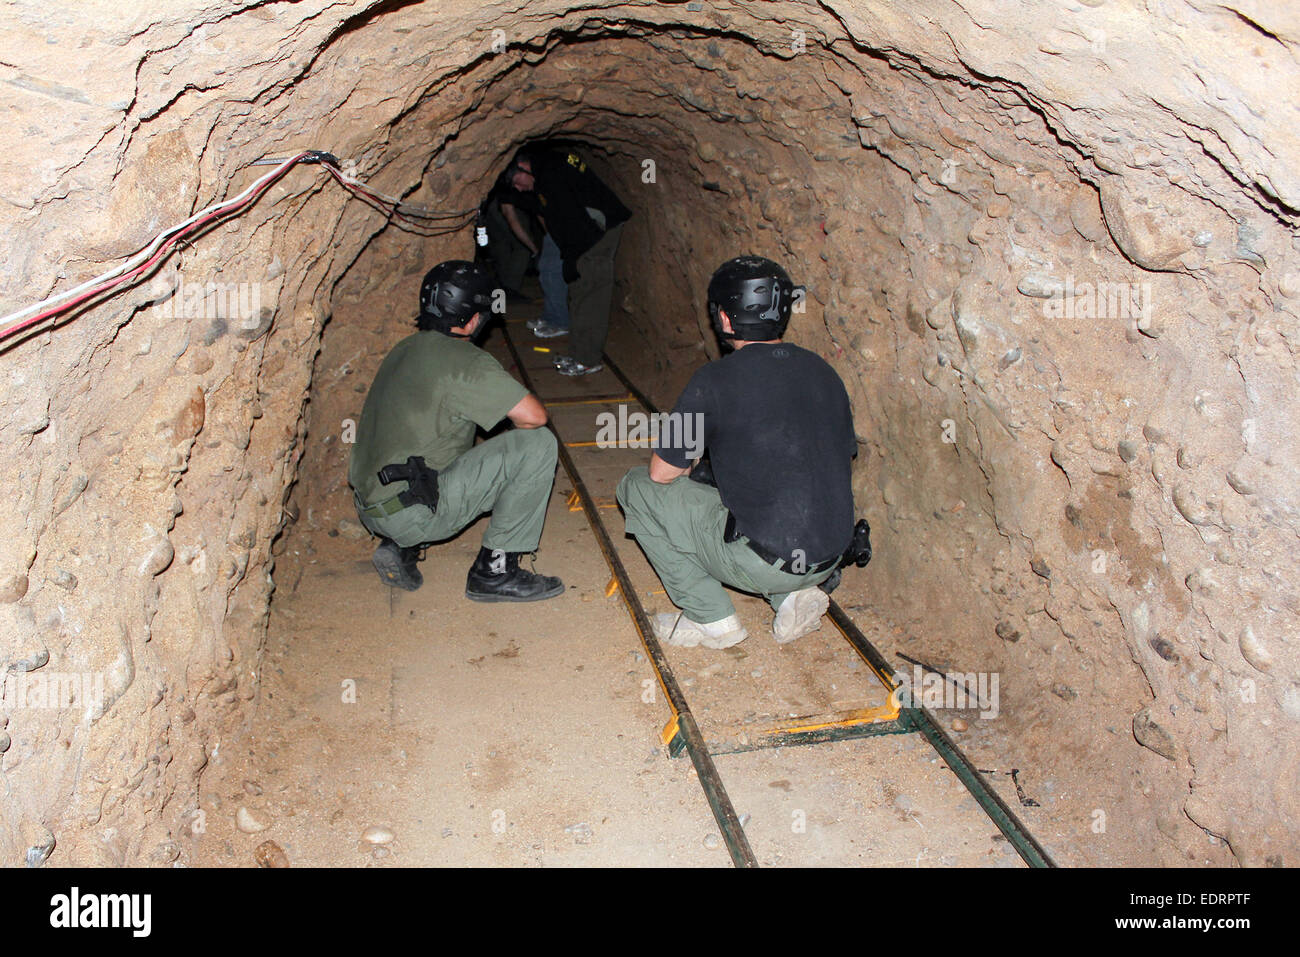 San Diego Tunnel Task Force explorer a sophisticated 560 meter long tunnel used for drug smuggling along the U.S. - Stock Image